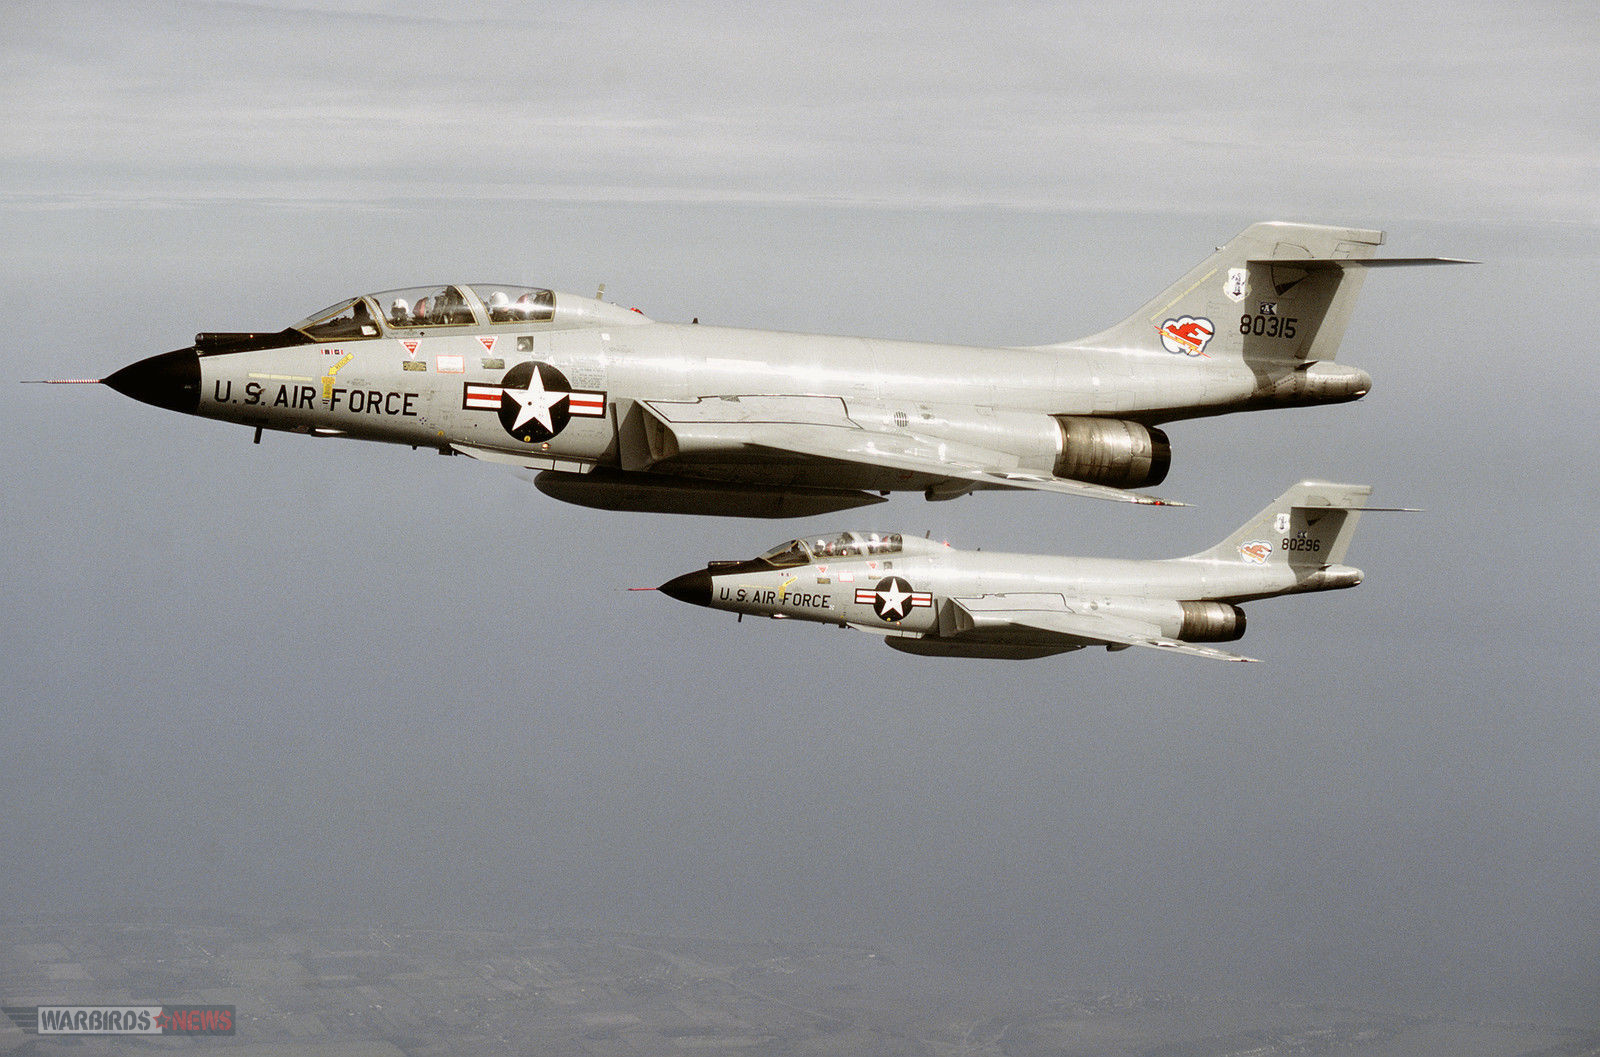 F-101 Voodoo)RObert F. Dorr Collection6